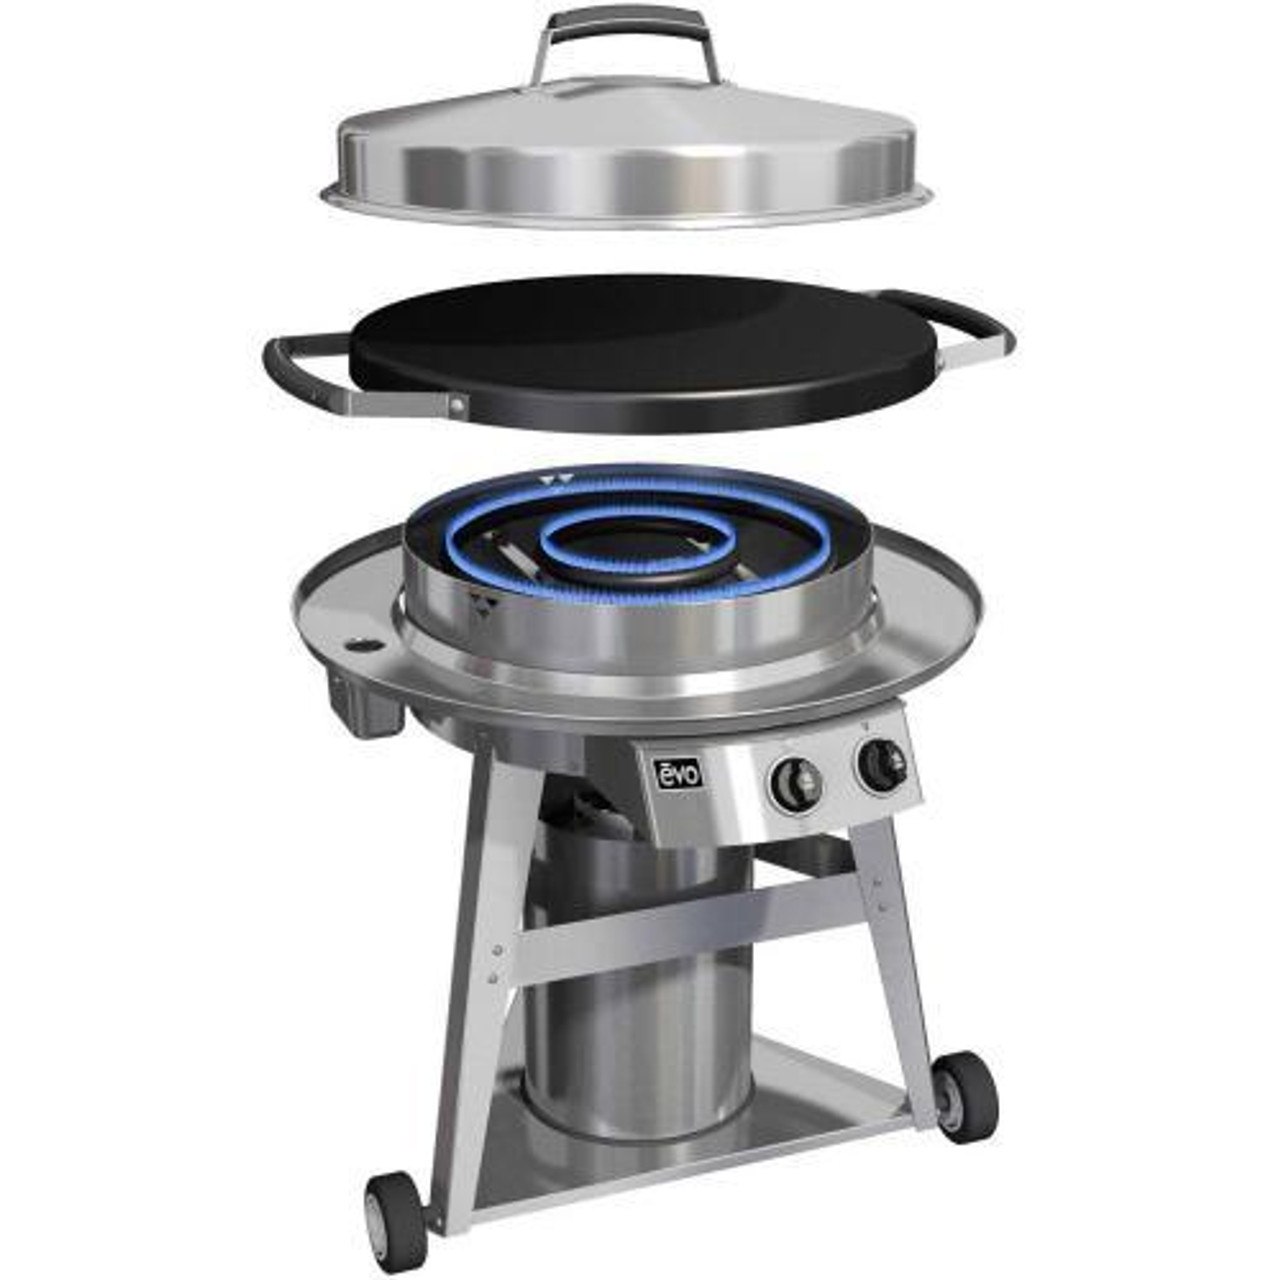 Evo 10 0002 Lp Or 10 0002 Ng Professional Classic Wheeled Cart Flattop Propane Or Natural Gas Grill Bigridgeoutdoorkitchens Com Which evo grill should you buy? evo 10 0002 lp or 10 0002 ng professional classic wheeled cart flattop propane or natural gas grill